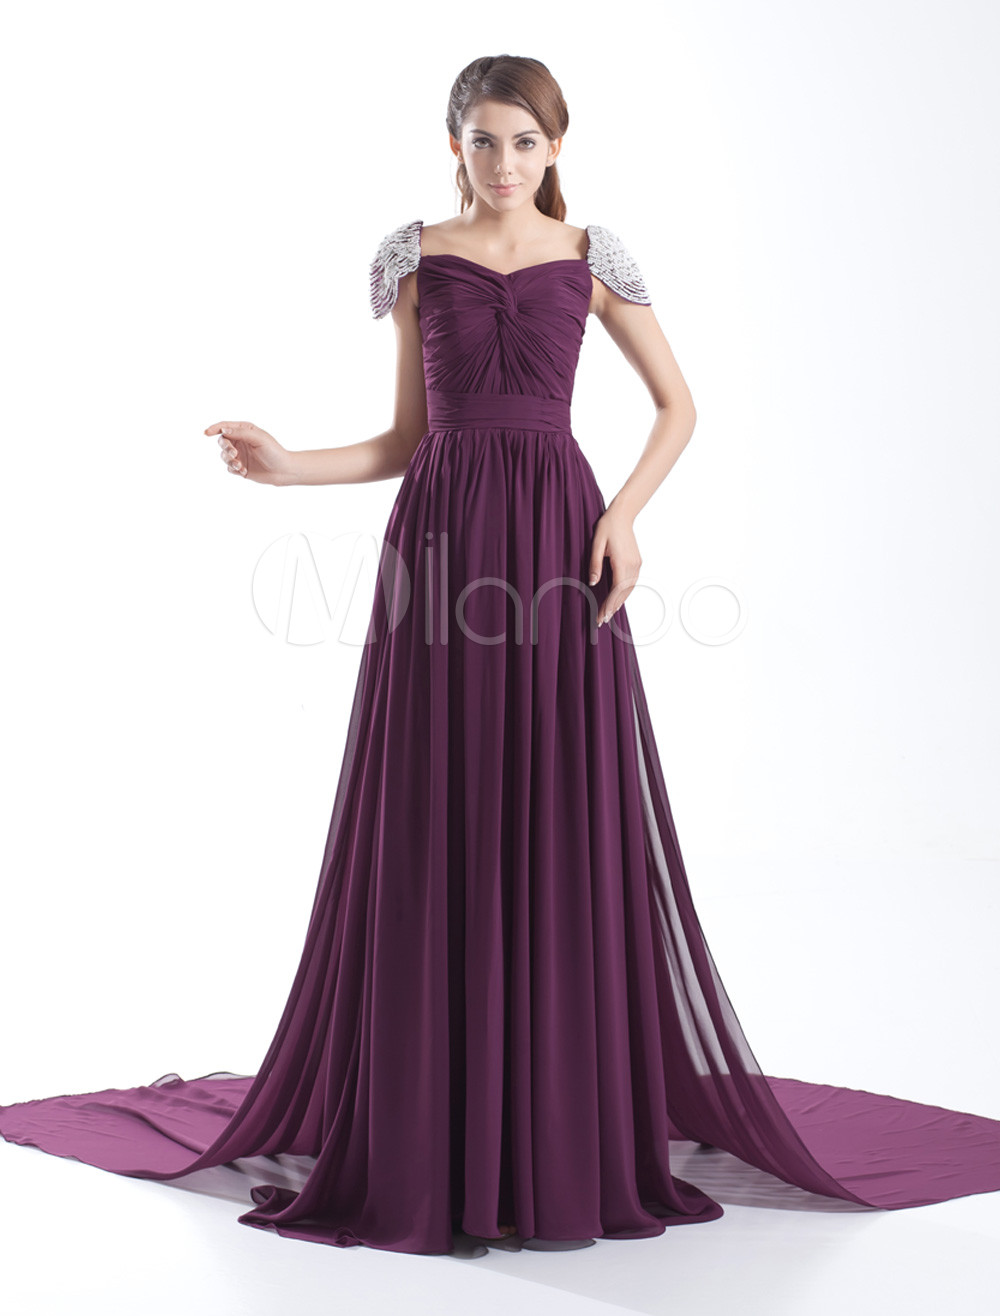 Grace Grape Chiffon Twisted Square Neck Women's Evening Dress